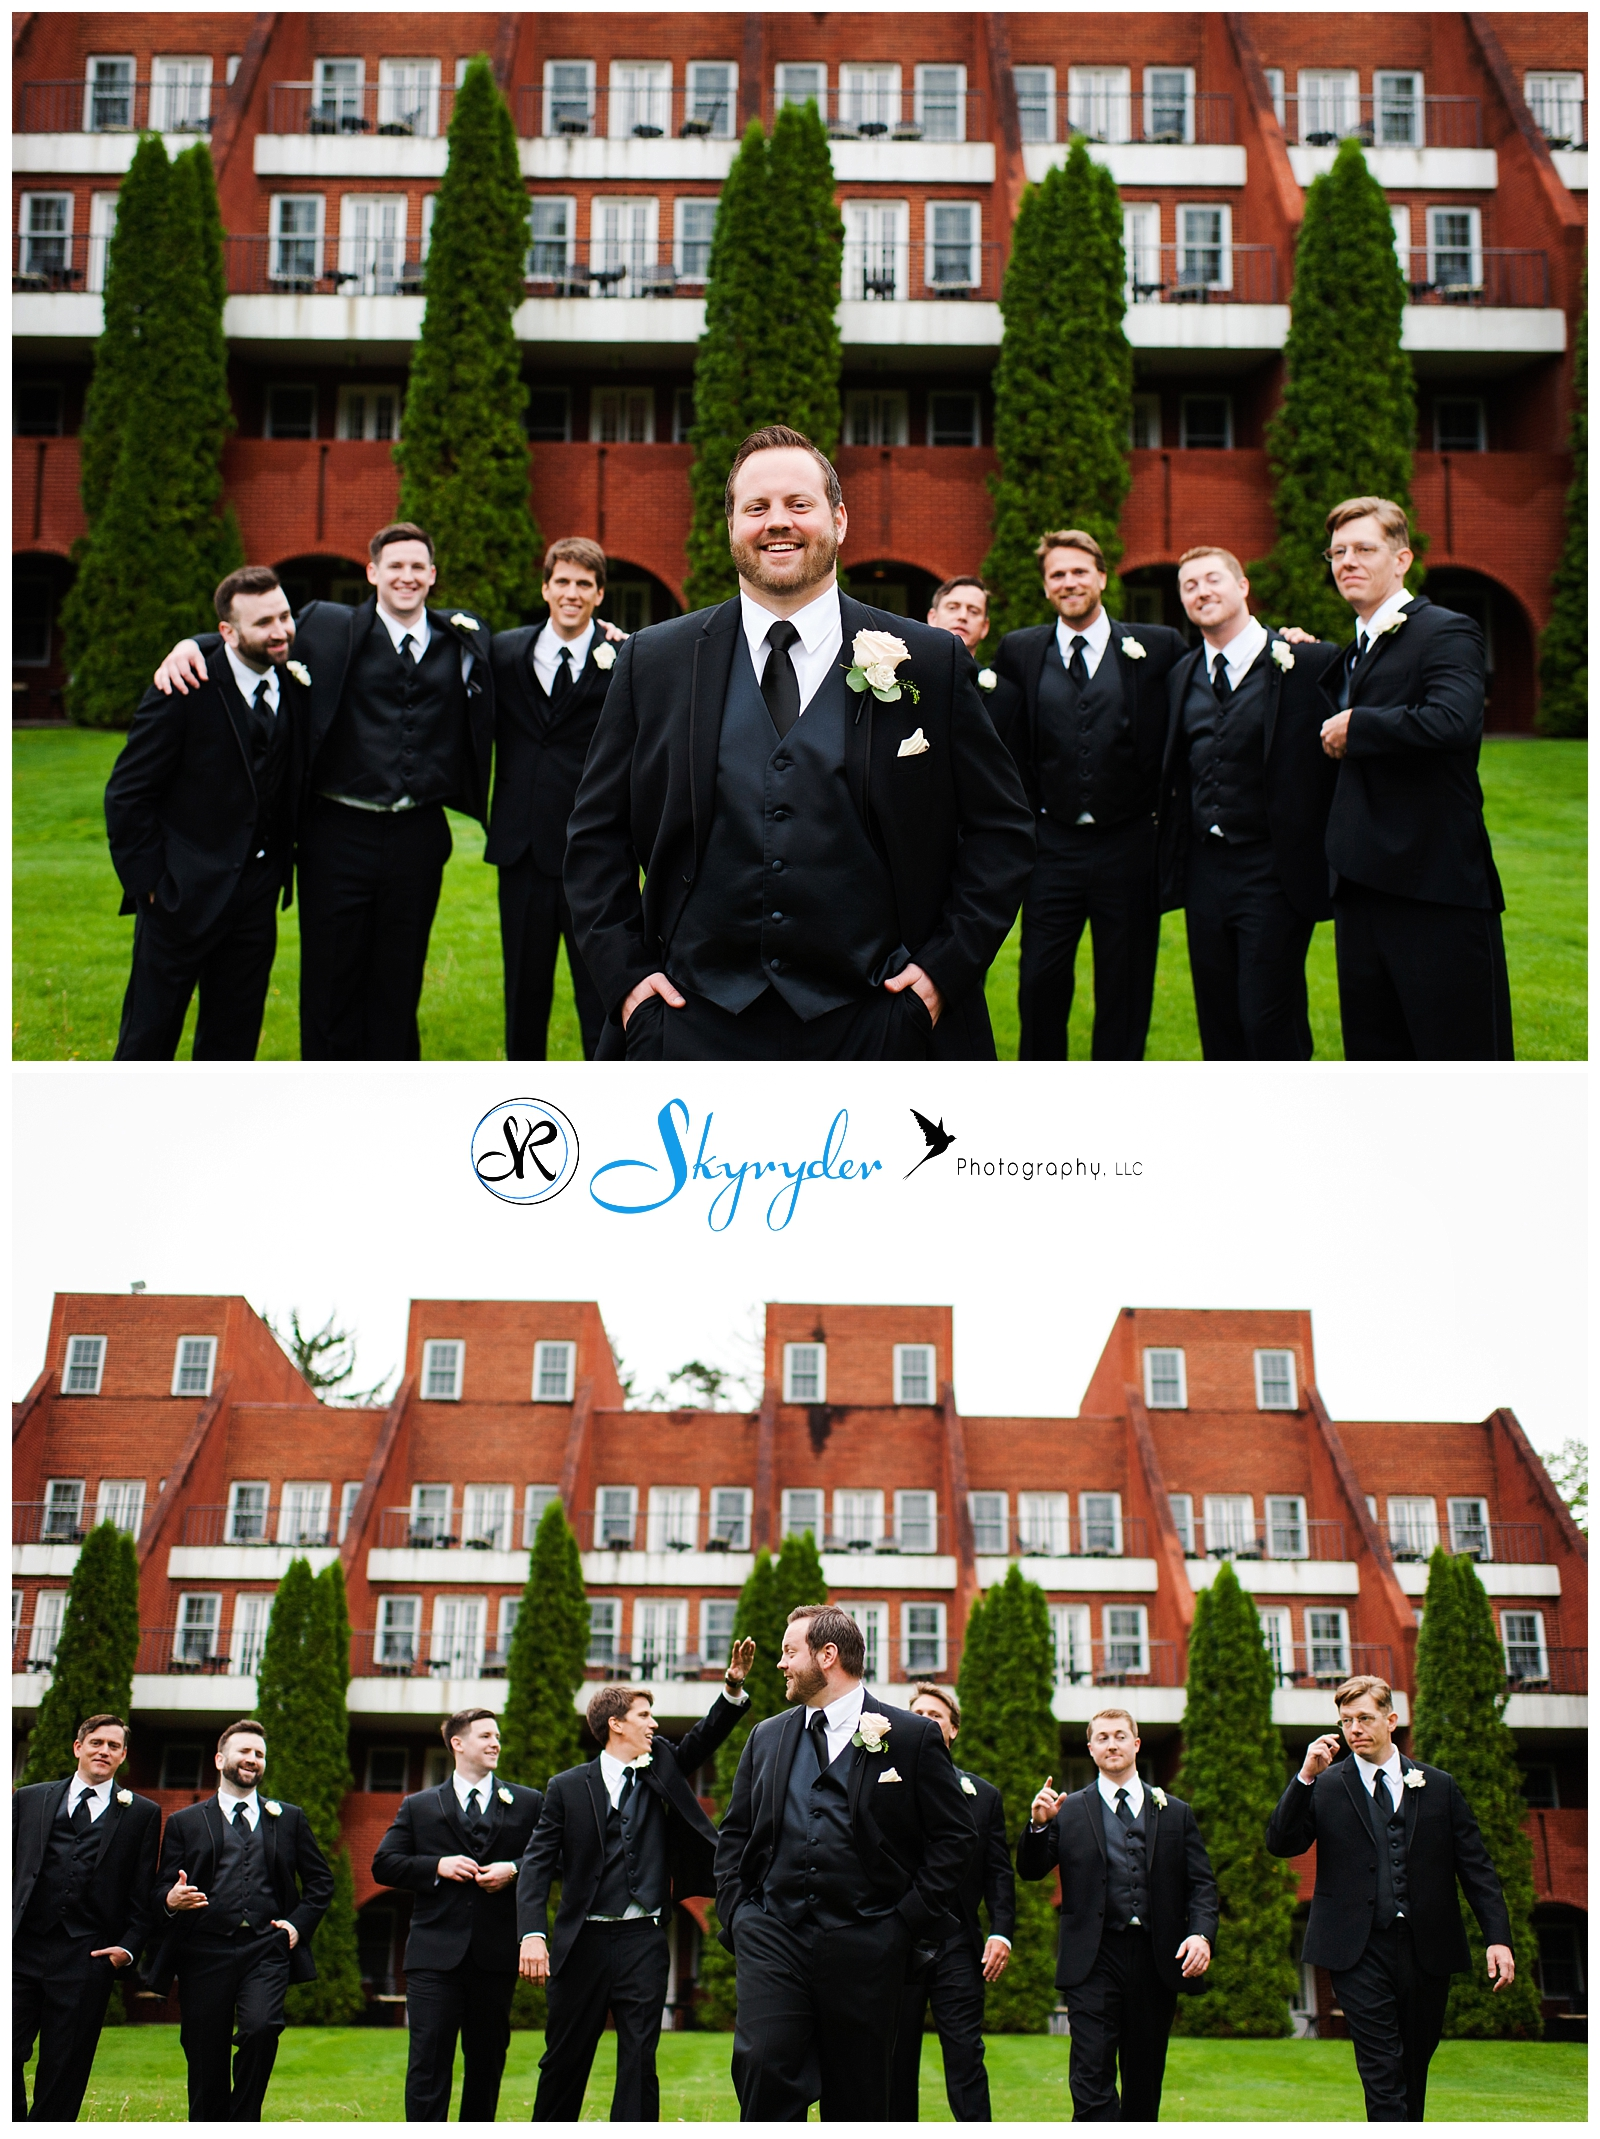 the-omni-homestead-resort-wedding-photographer-photography-hot-springs-virginia-skyryder-blacksburg-engagement-roanoke-charlottesville-radford-lexington_0042.jpg